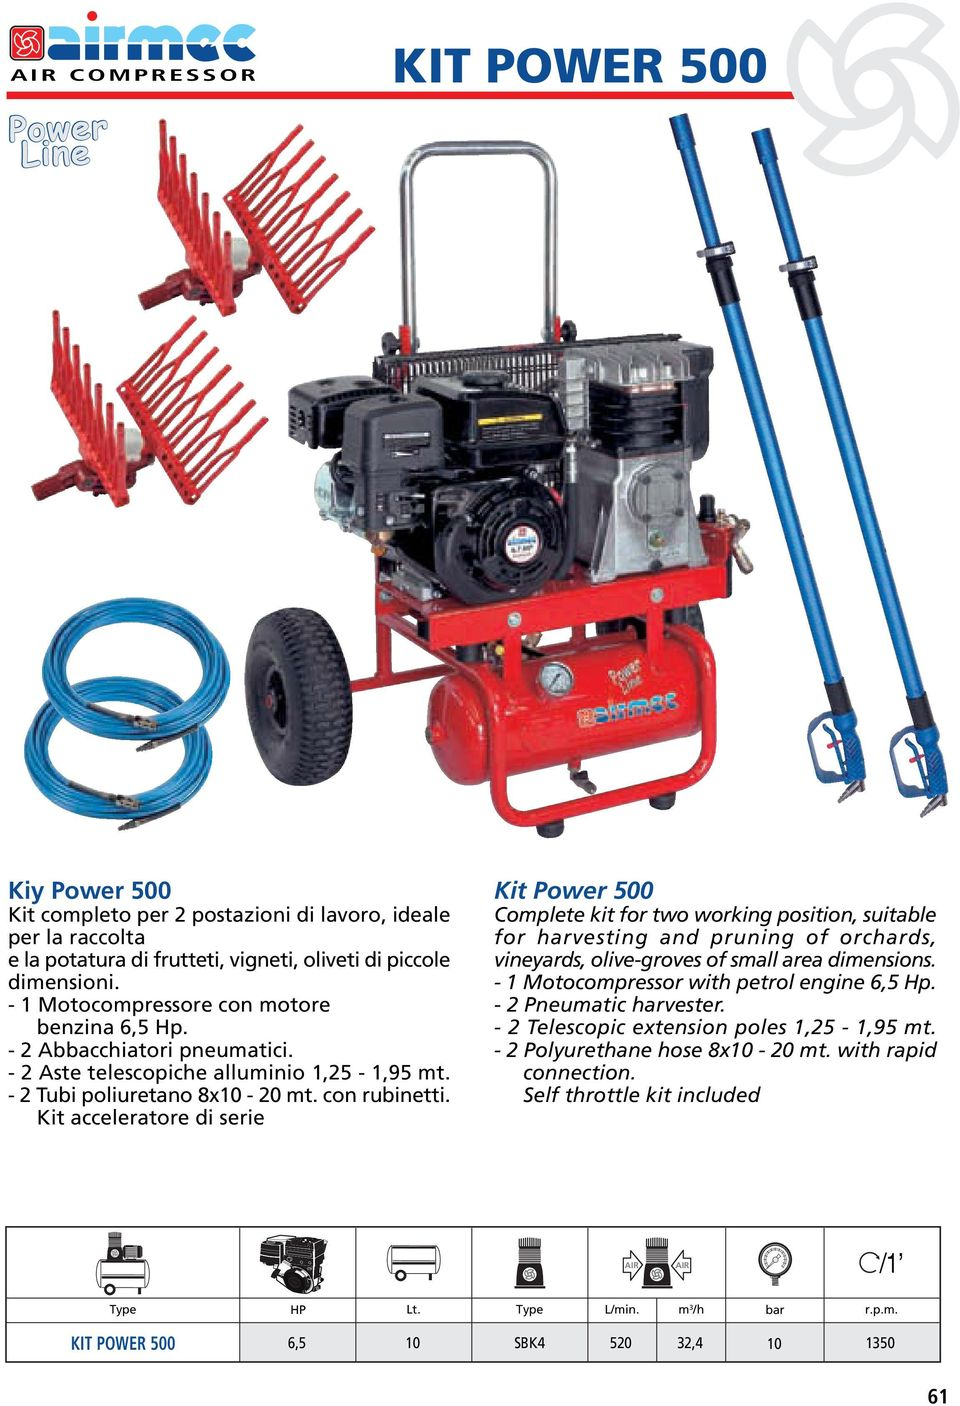 Kit acceleratore di serie Kit Power 500 Complete kit for two working position, suitable for harvesting and pruning of orchards, vineyards, olive-groves of small area dimensions.